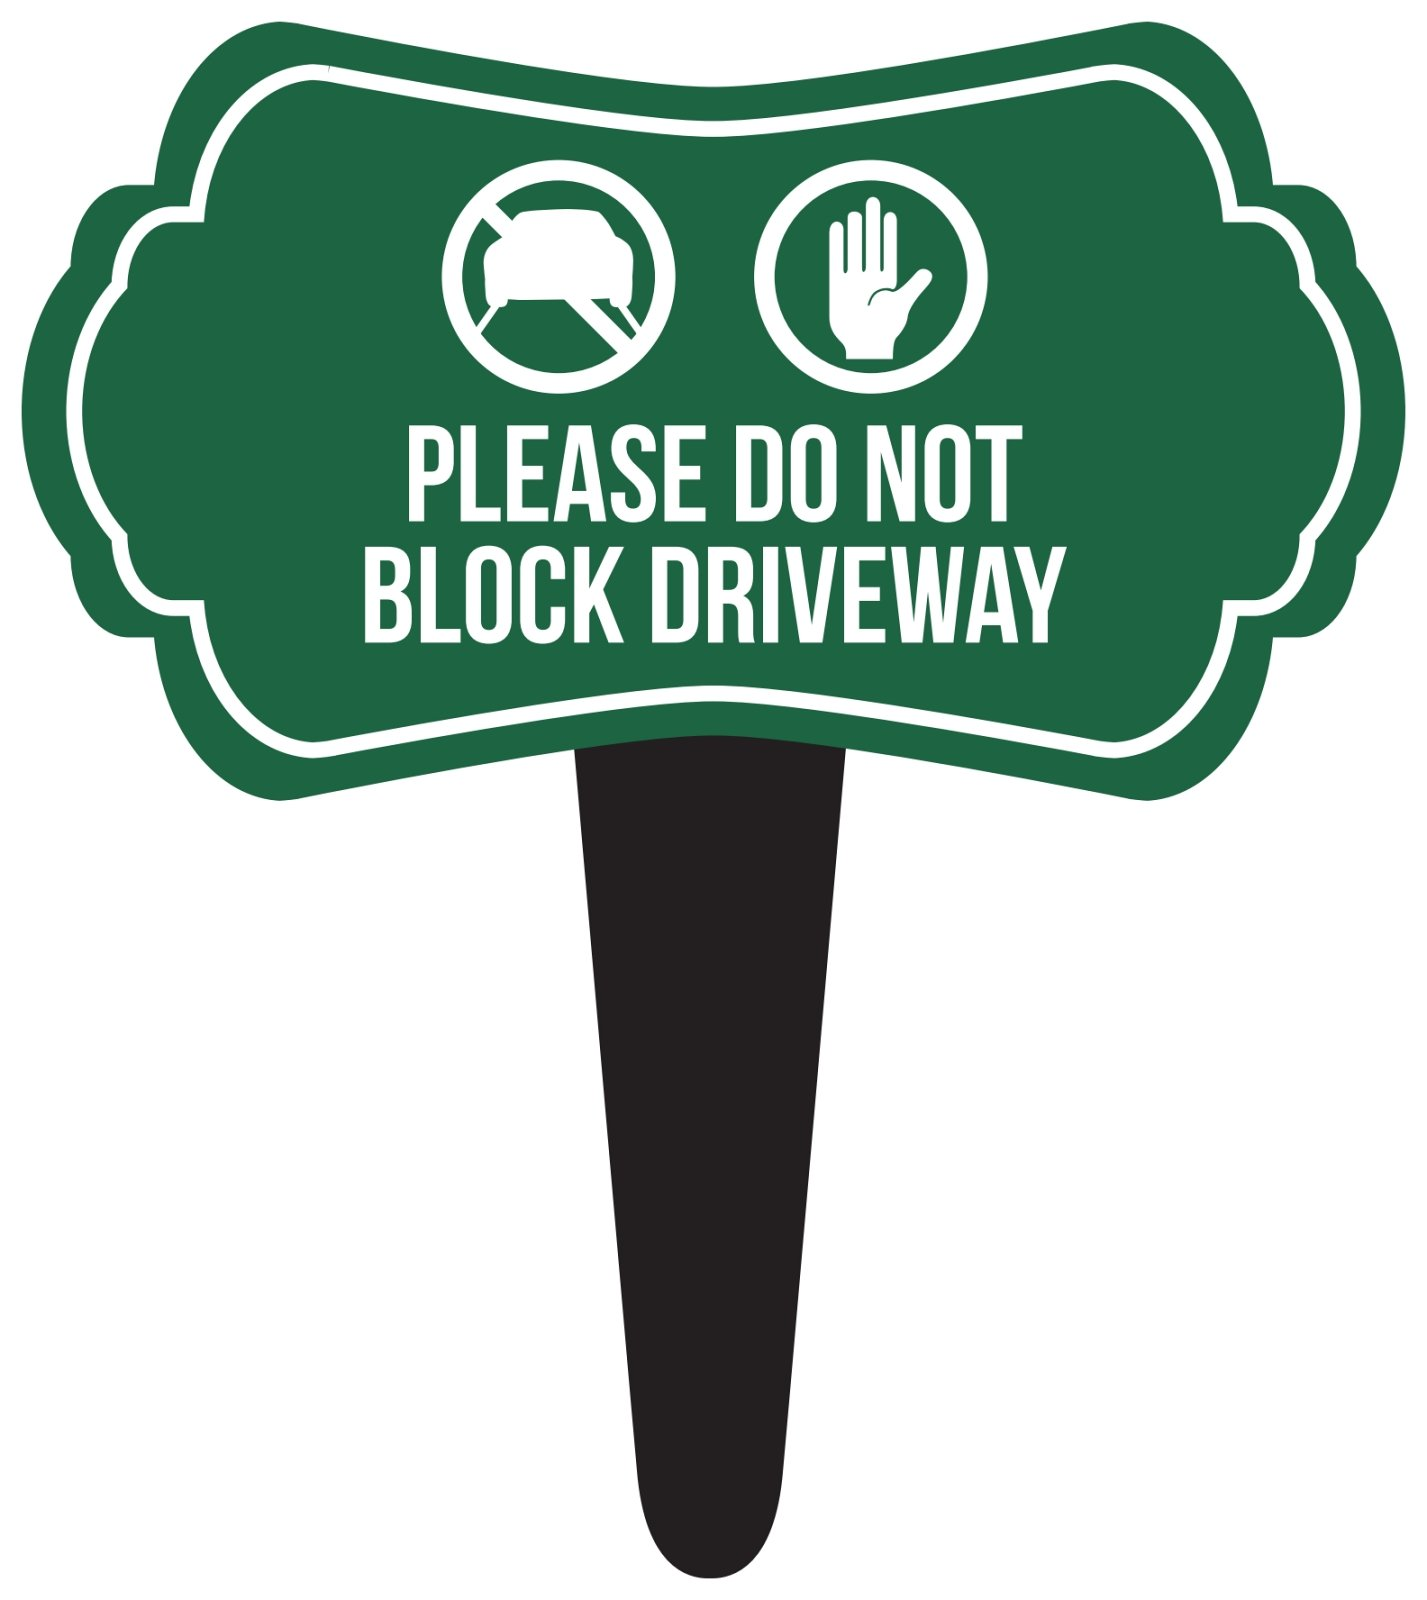 iCandy Combat Please Do Not Block Driveway Home Yard Lawn Sign, Green, 16x18, Single